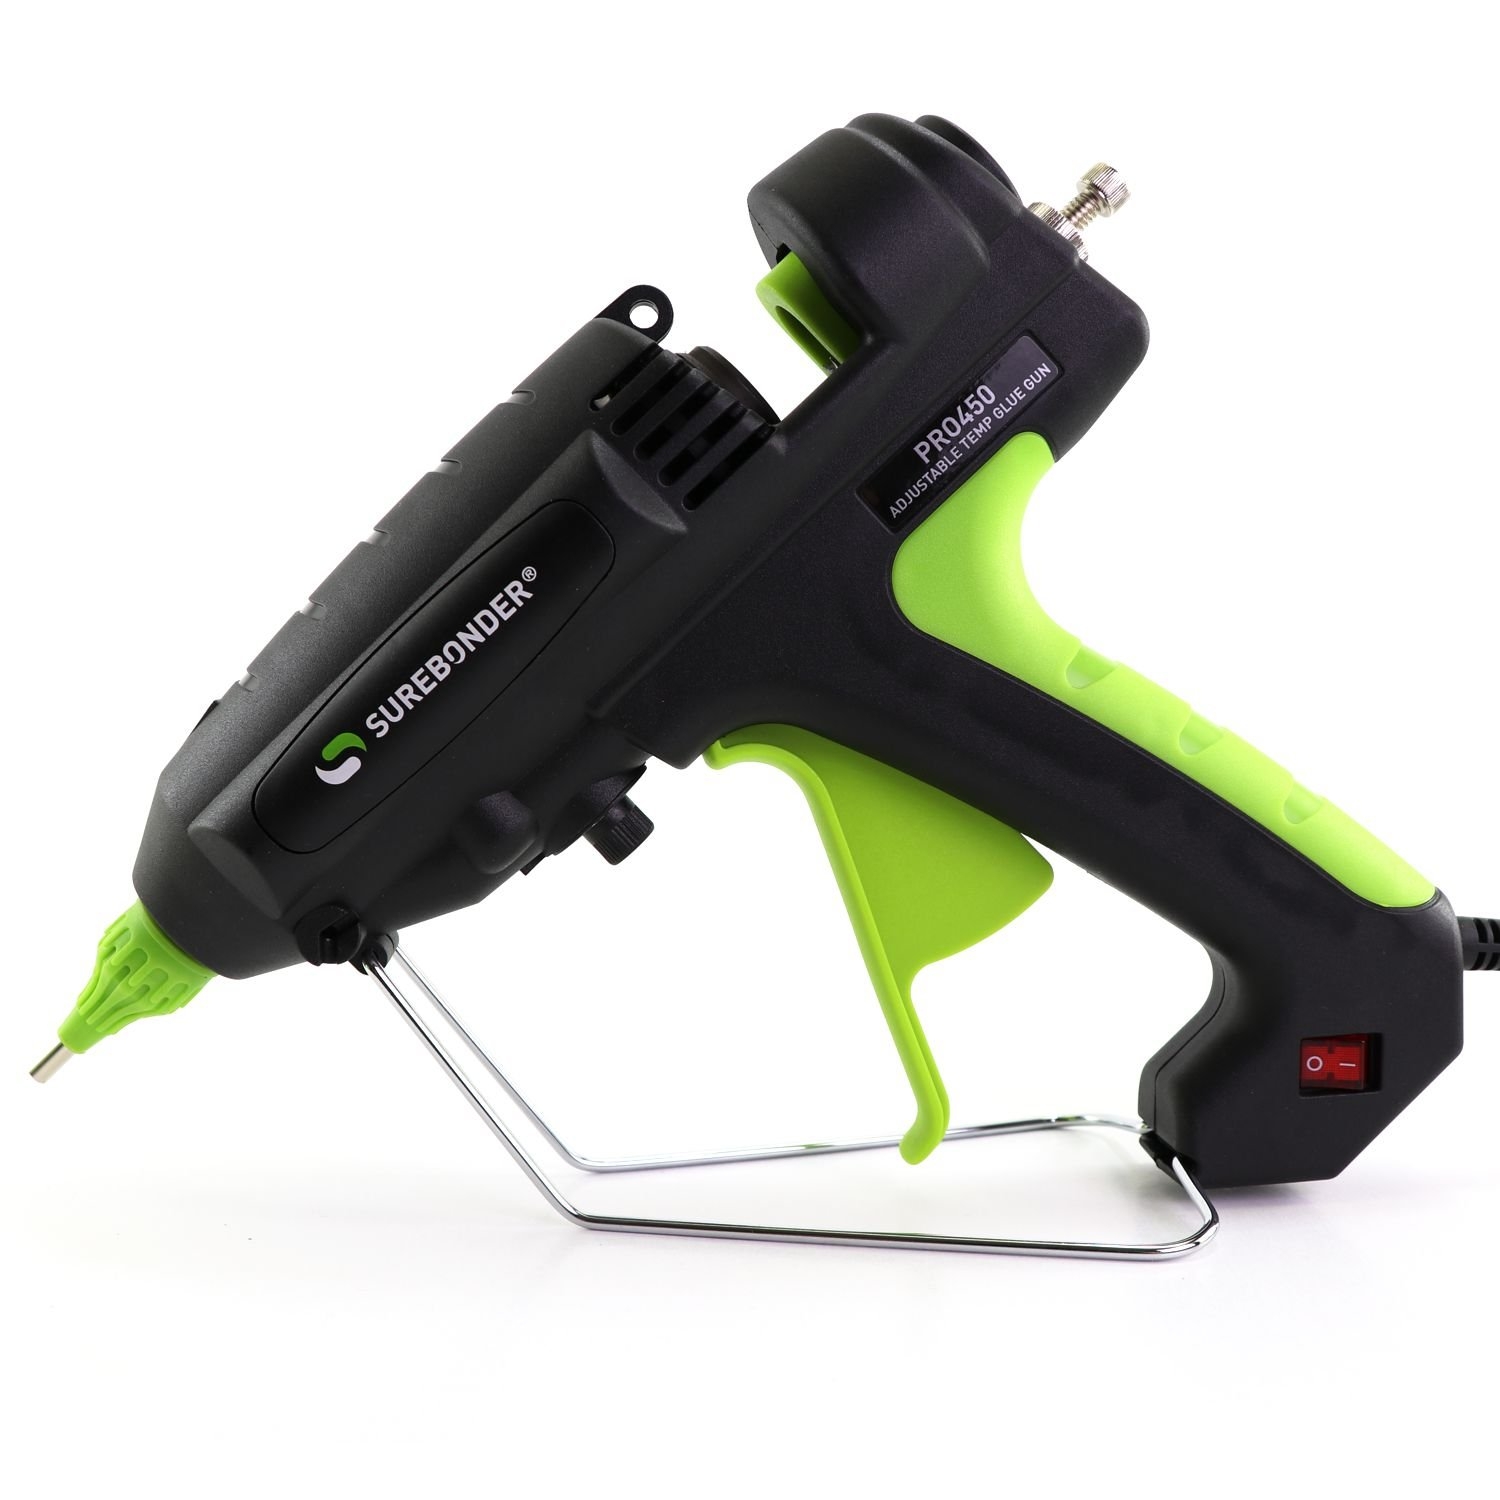 PRO450 400 Watt Adjustable Temperature Professional Heavy Duty Hot Glue Gun - Uses full size, 7/16'' sticks